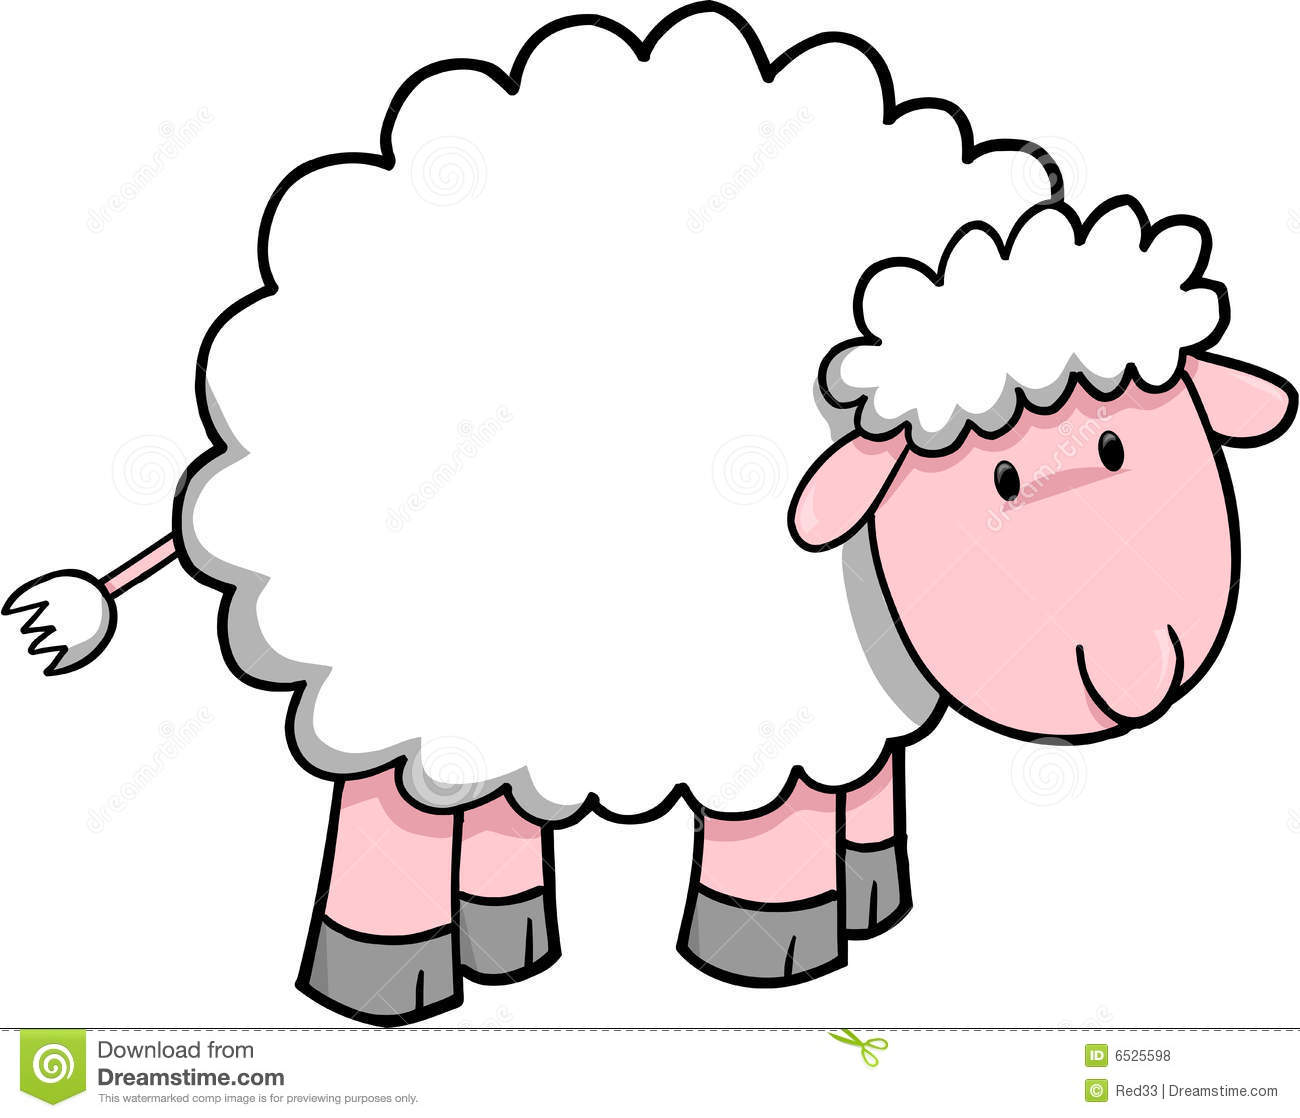 Baby Sheep Clipart Fun Timewebsite Clipa-Baby Sheep Clipart Fun Timewebsite Clipart-1